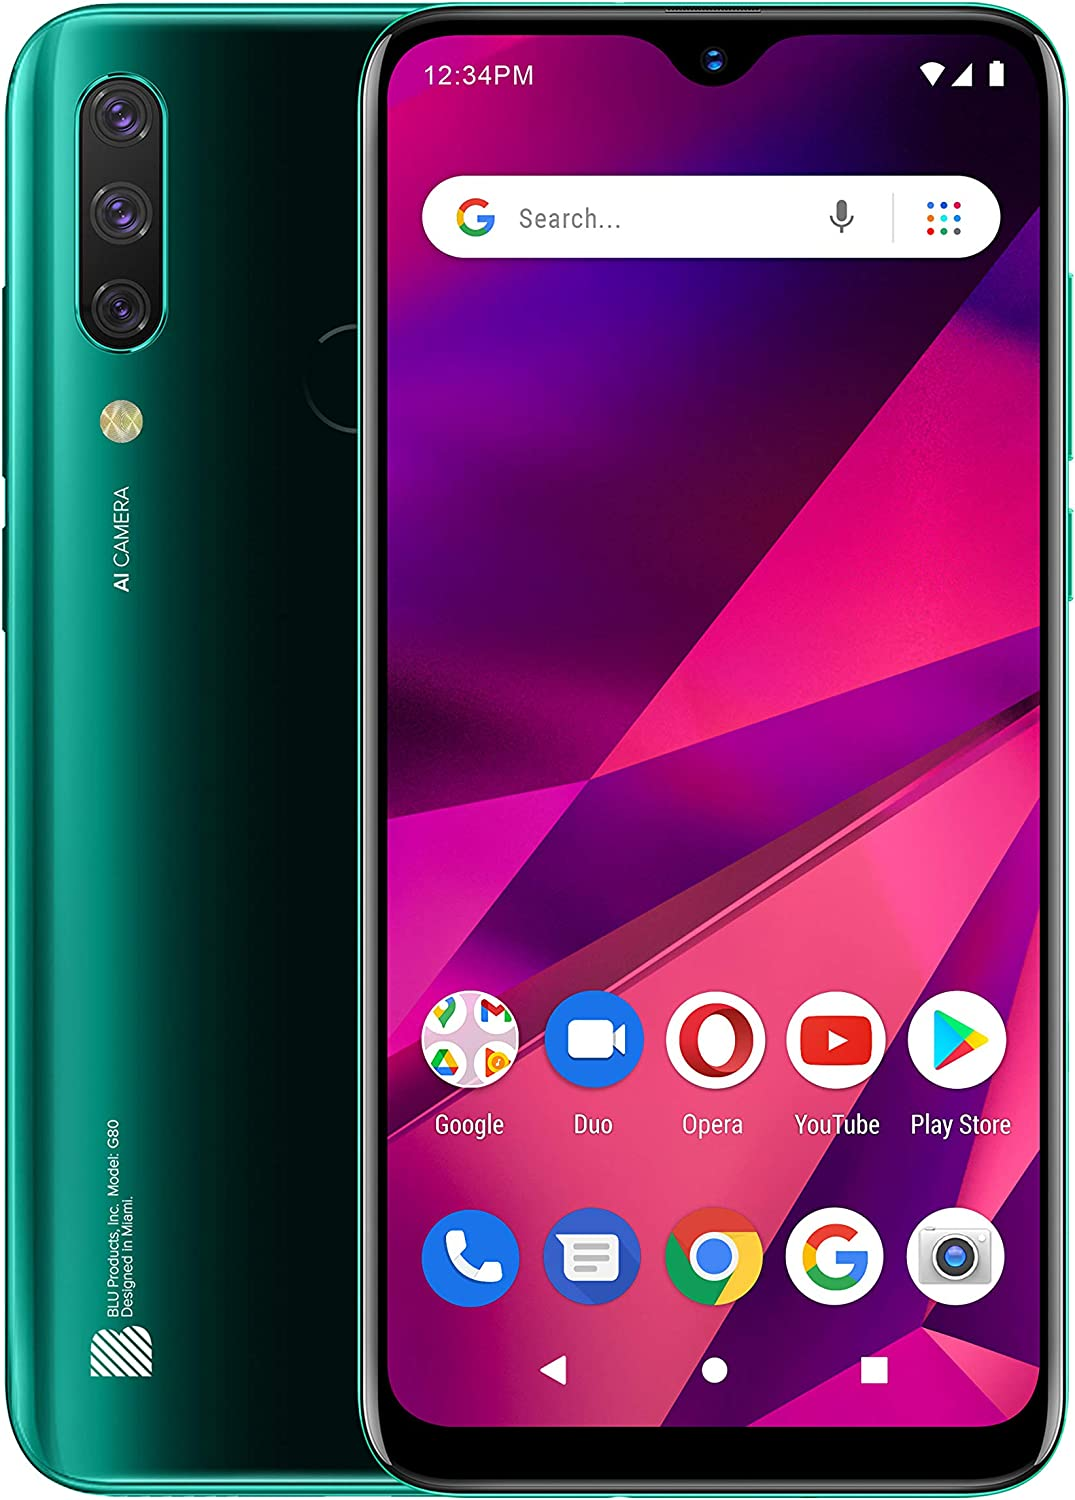 BLU G80 | 2021| All day battery | Unlocked | US version | US warranty | 3/64GB | Green